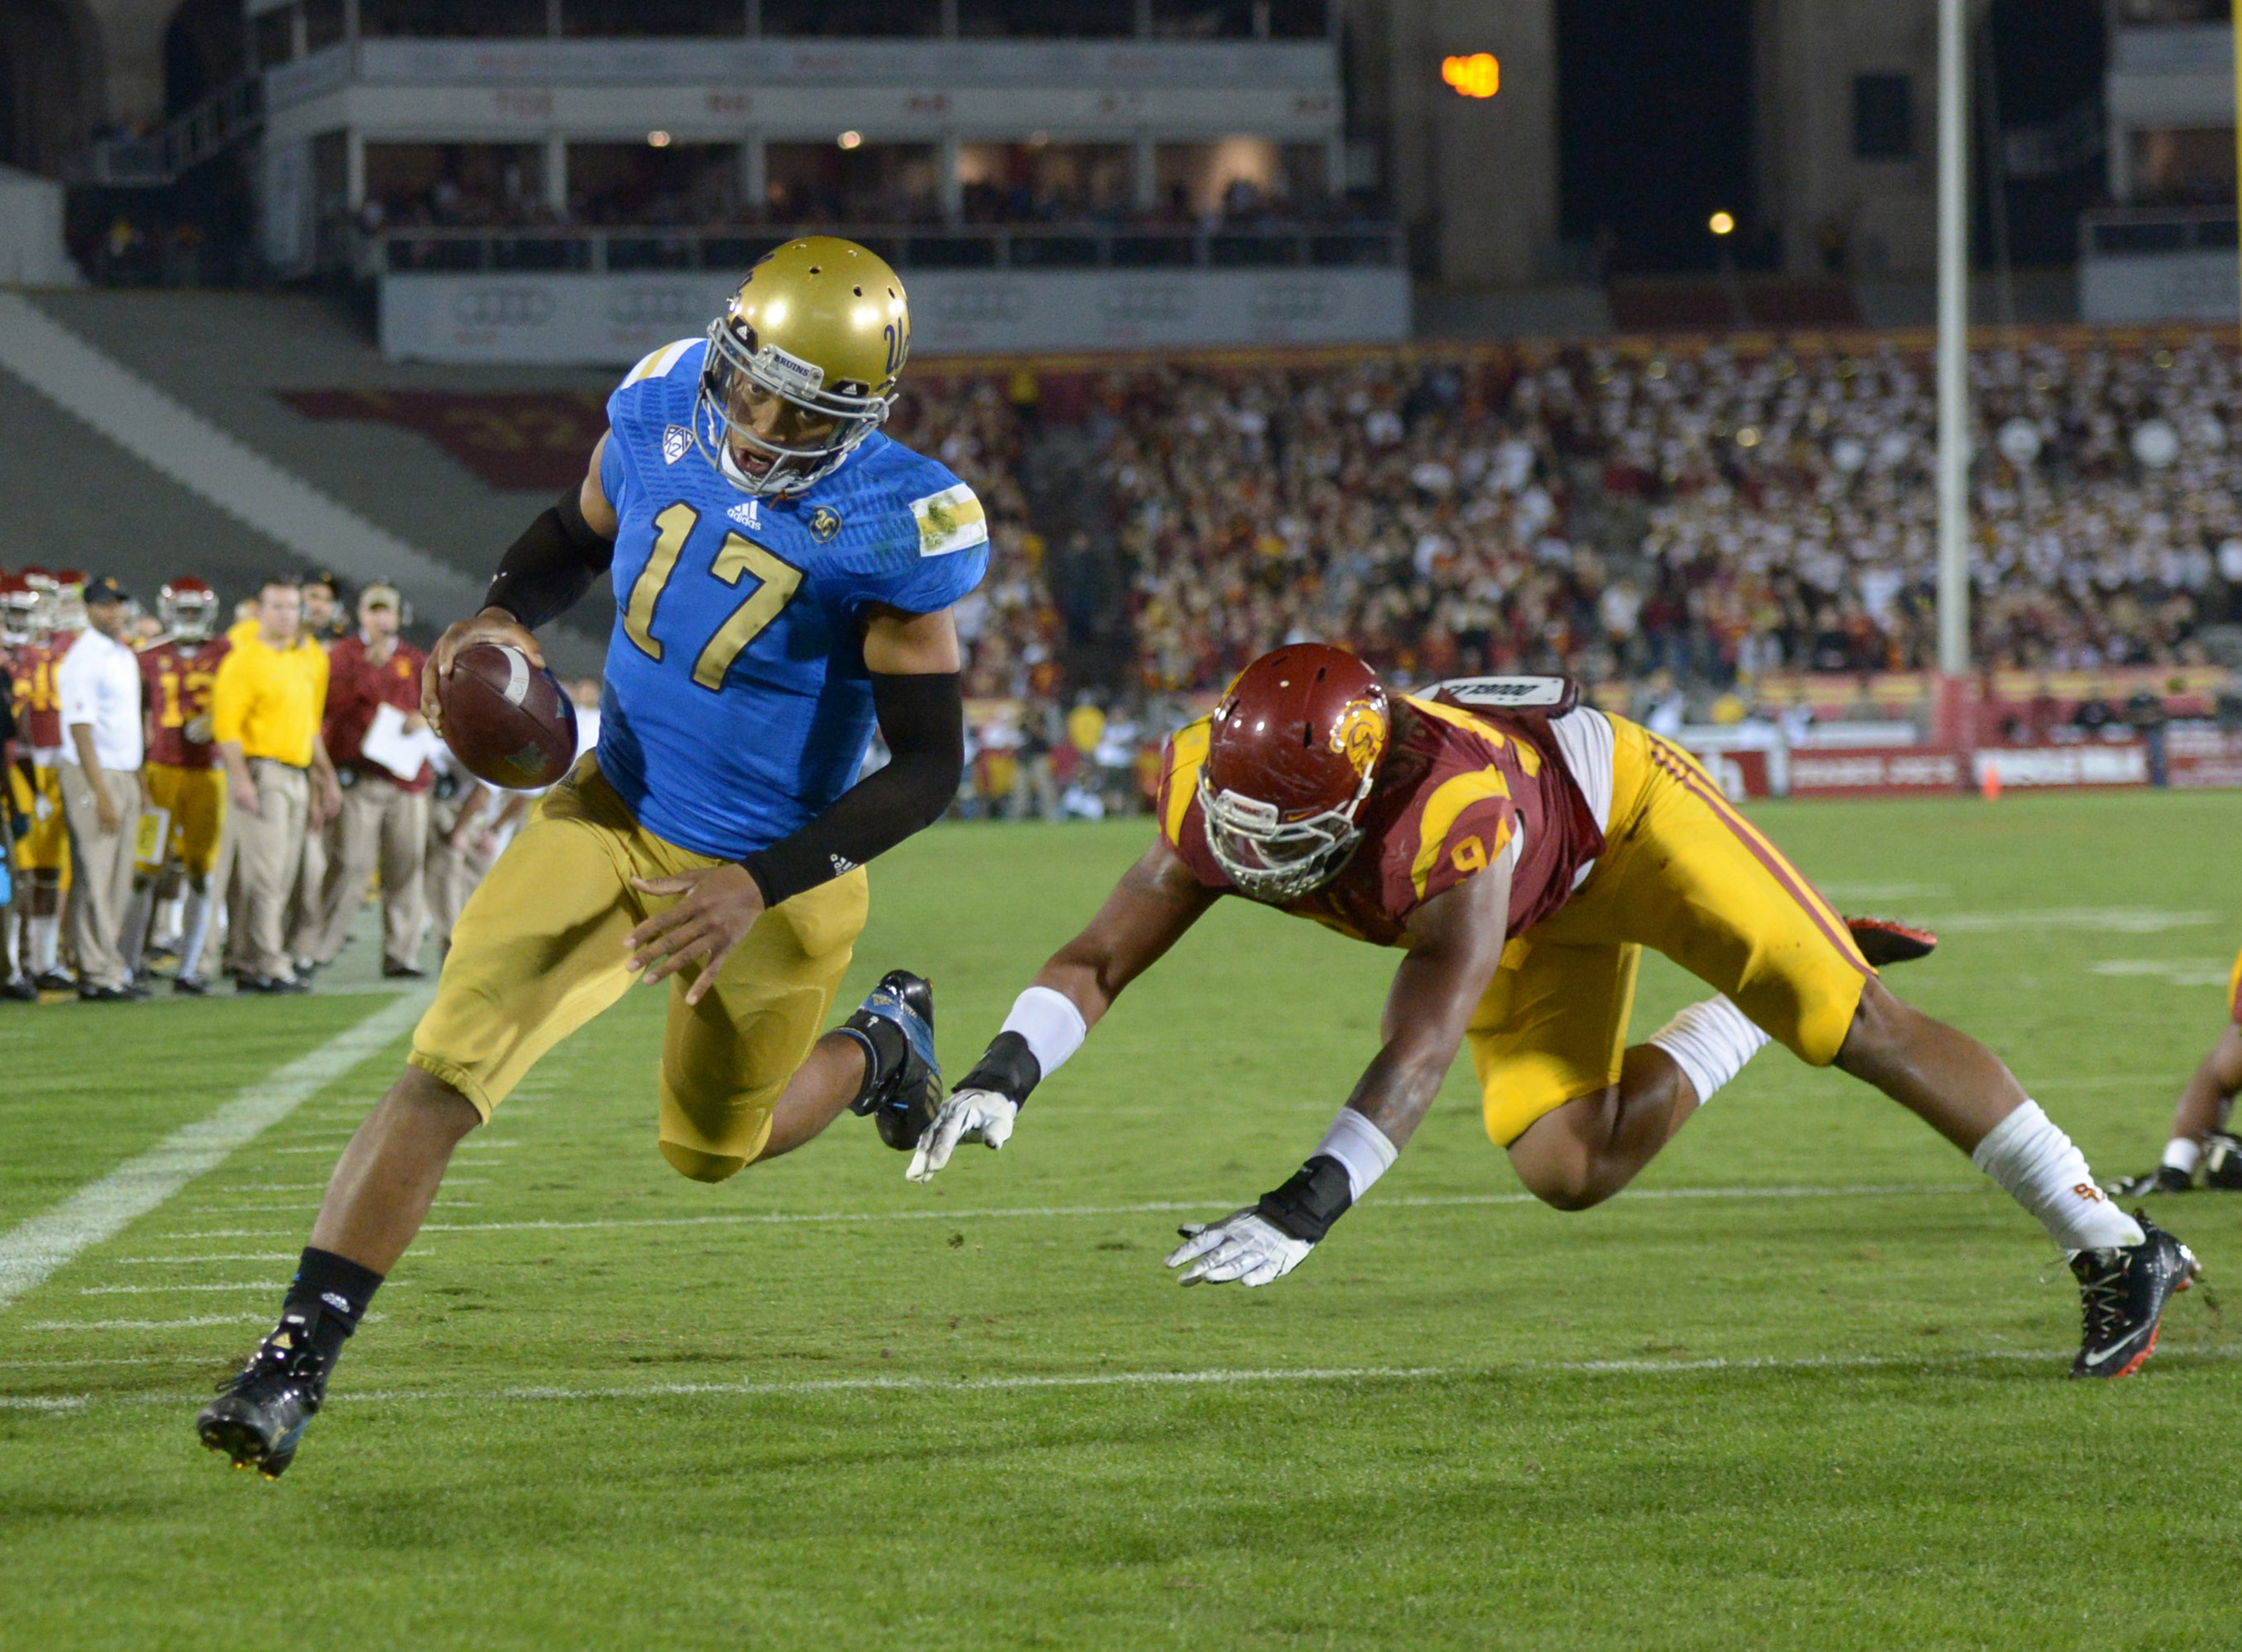 There's no doubt that Hundley is the best QB the Bruins have had since Cade.